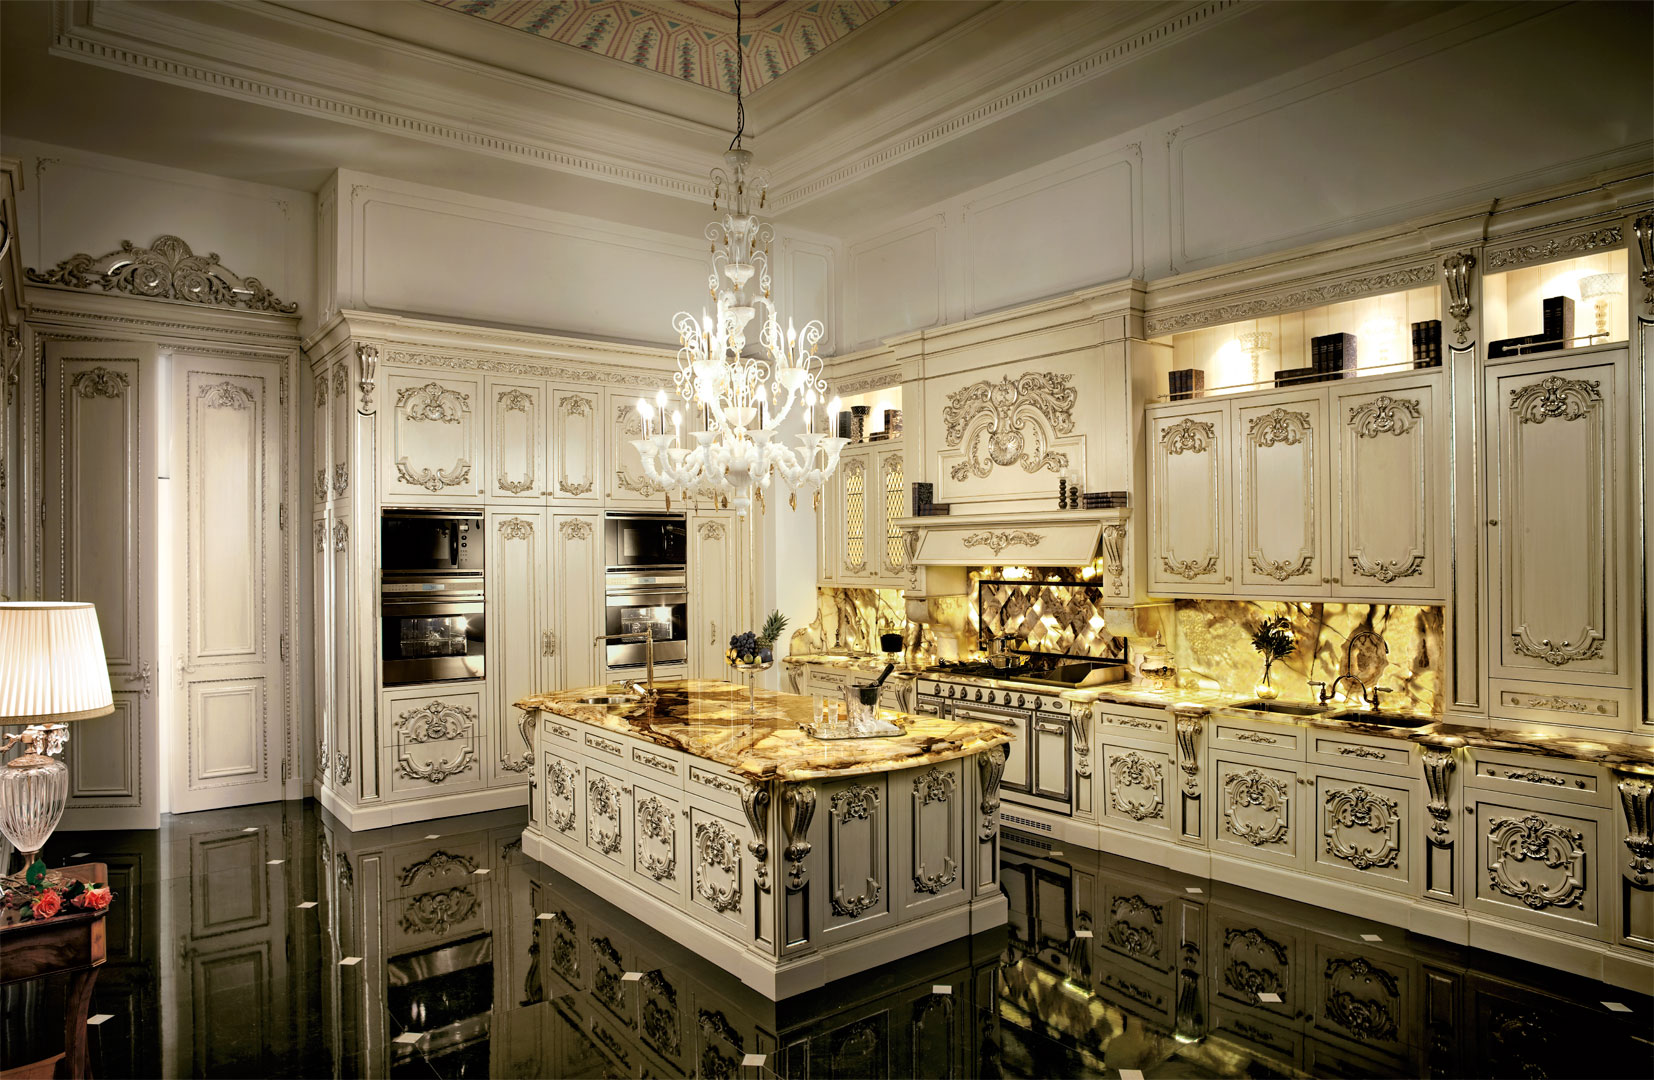 A luxury kitchen that shines like a diamond